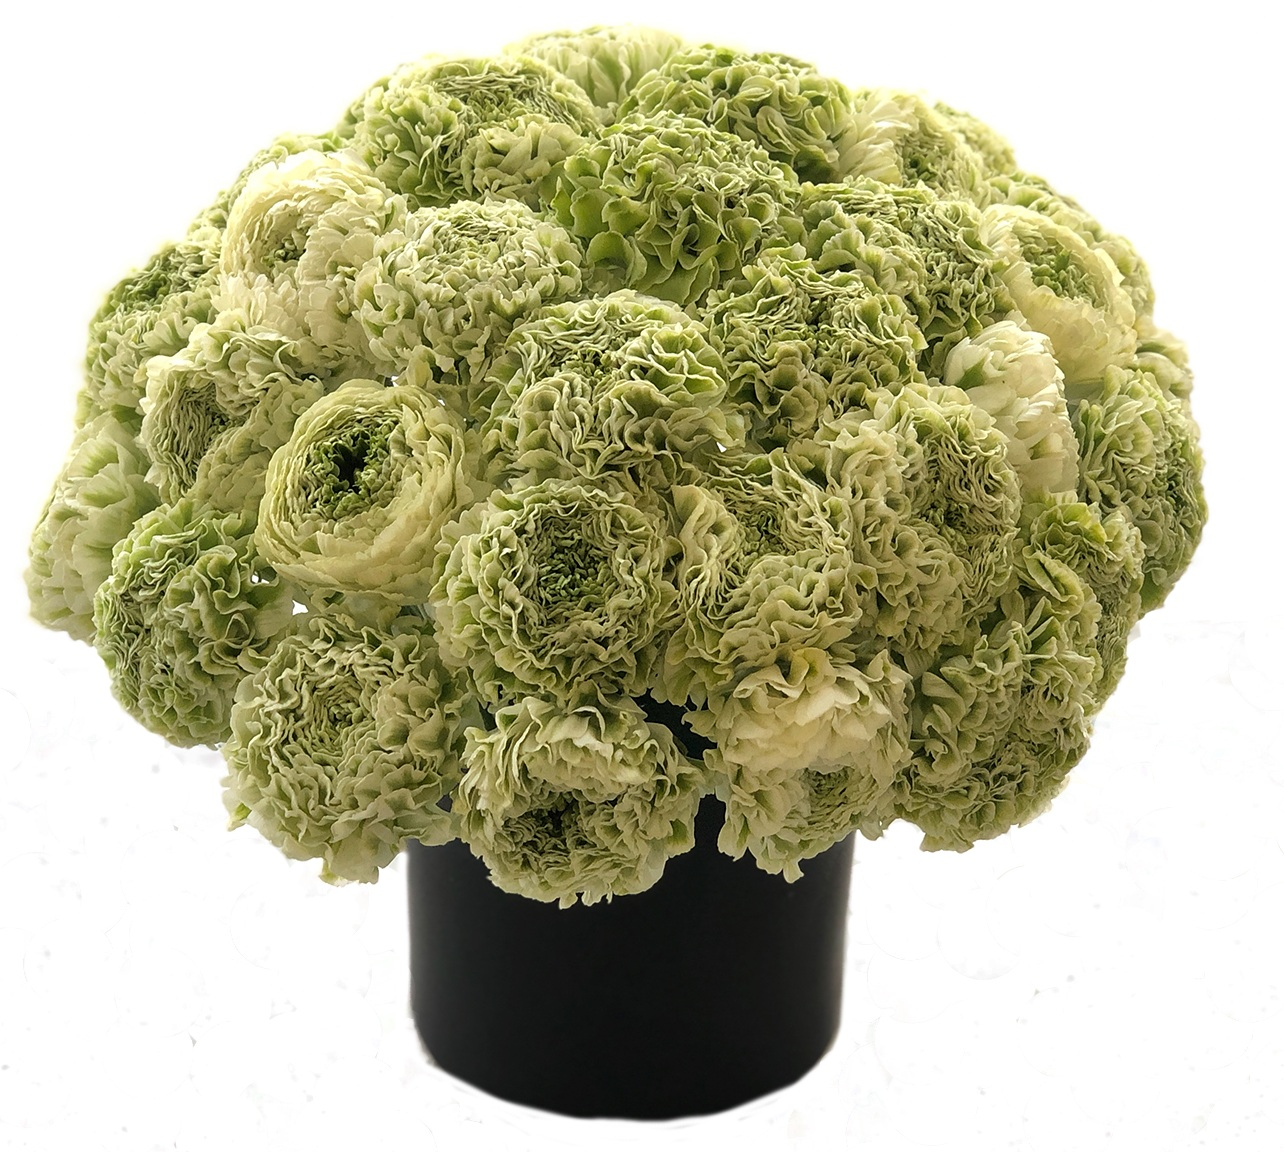 Luxe Novelty Ranunculus starting at $550